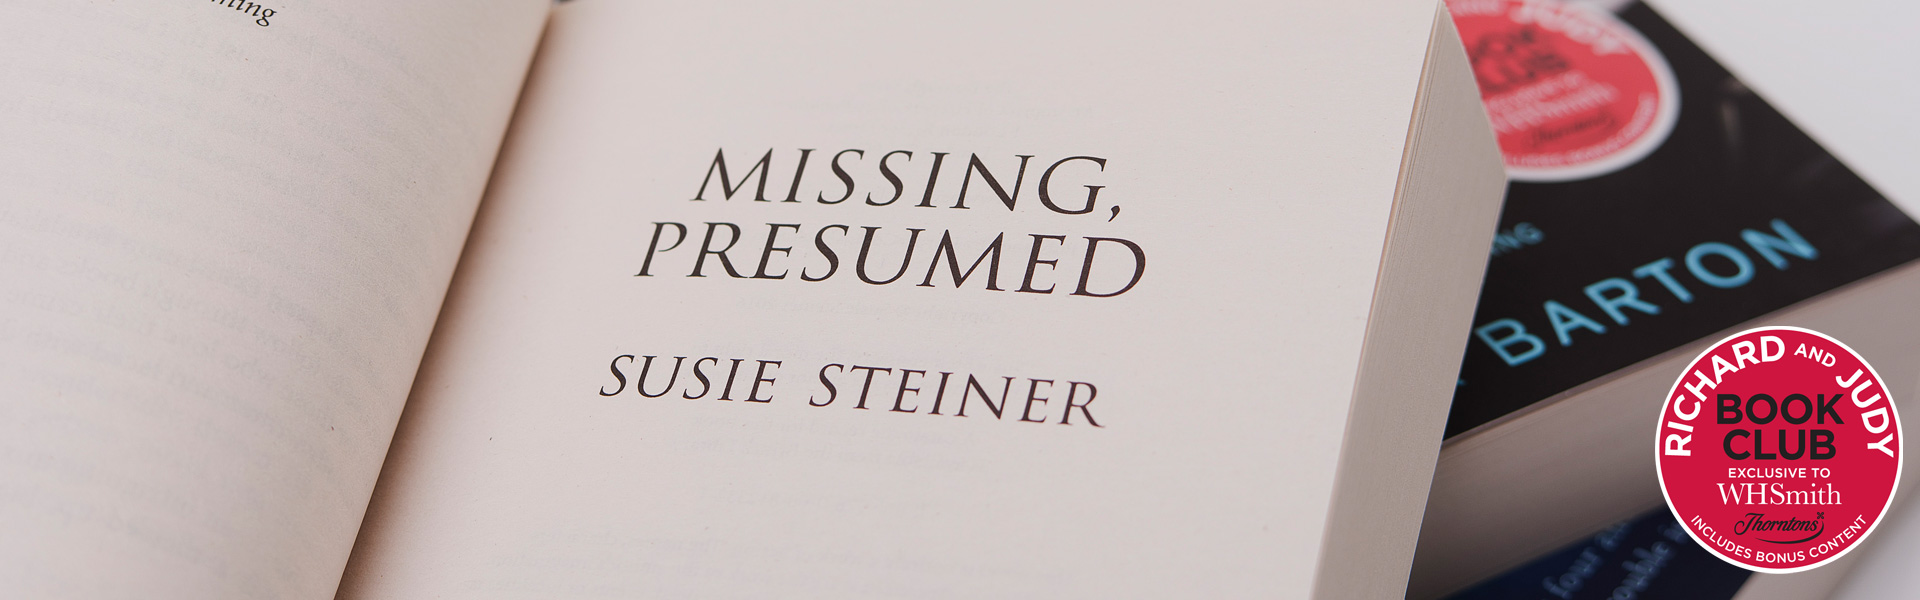 Susie Steiner: The Murder Squad and Me